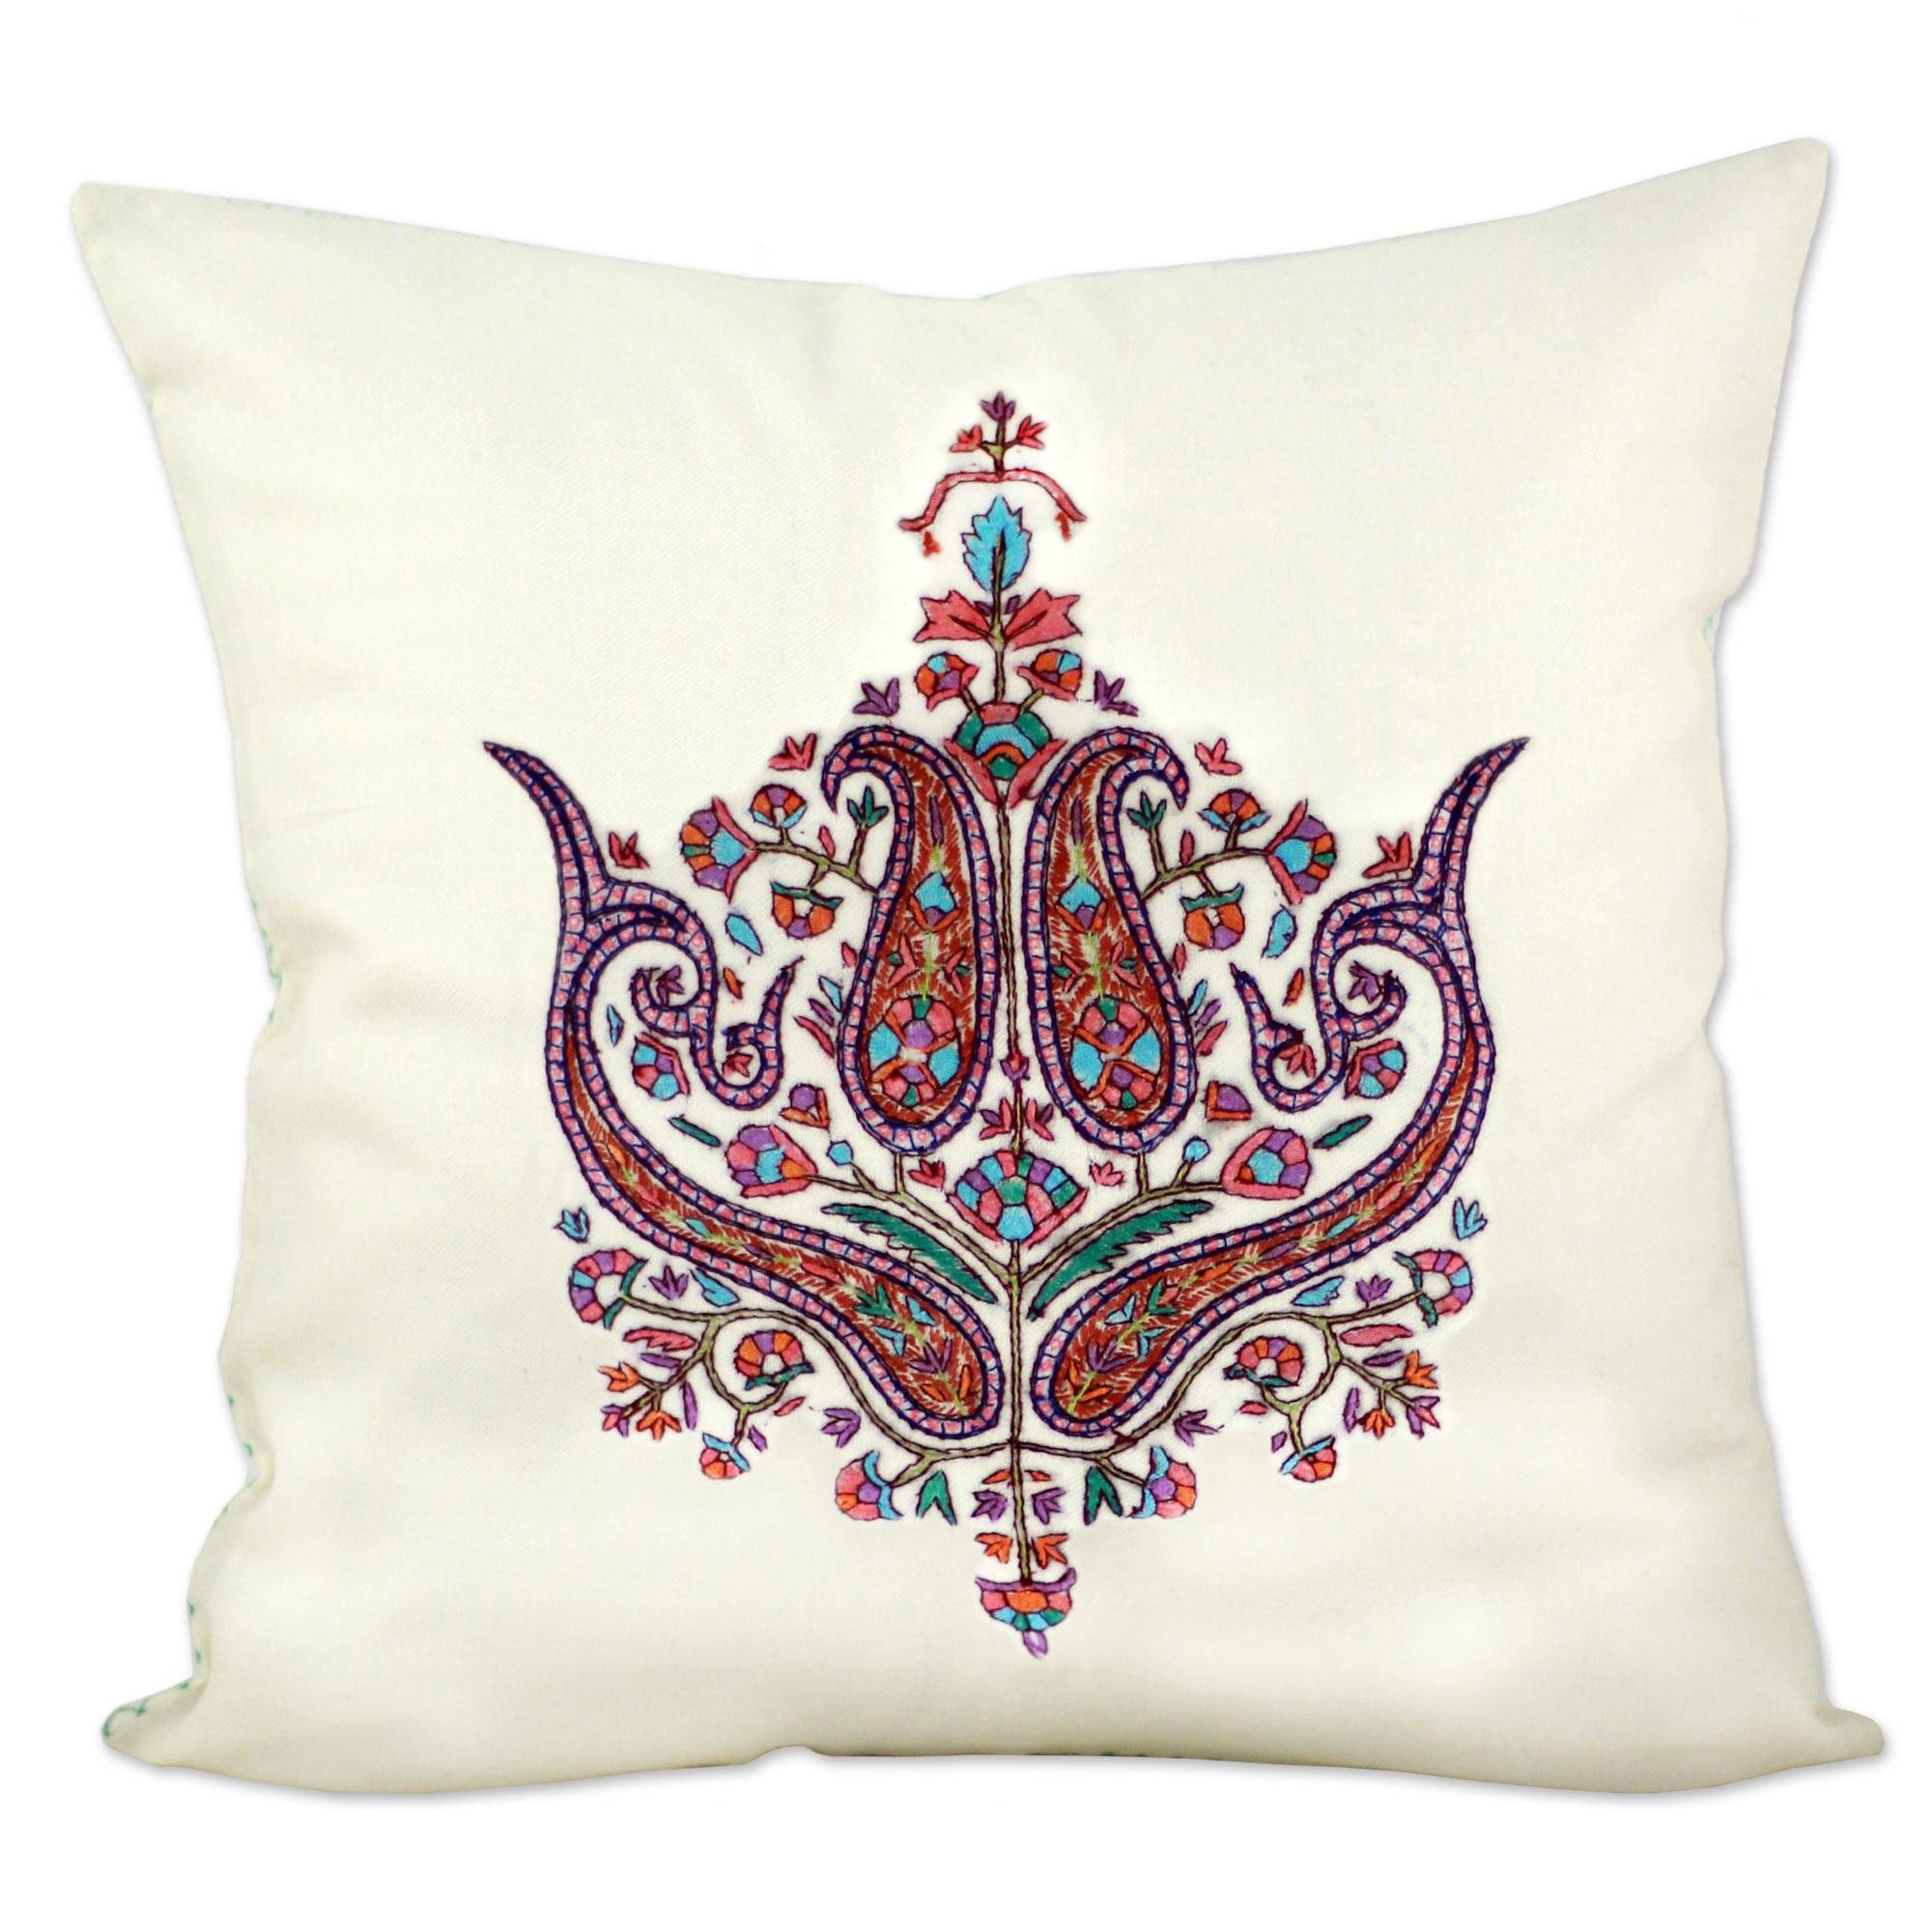 Unicef Market Cushion Cover Handcrafted In India Embroidered With Paisley Paisley Grandeur